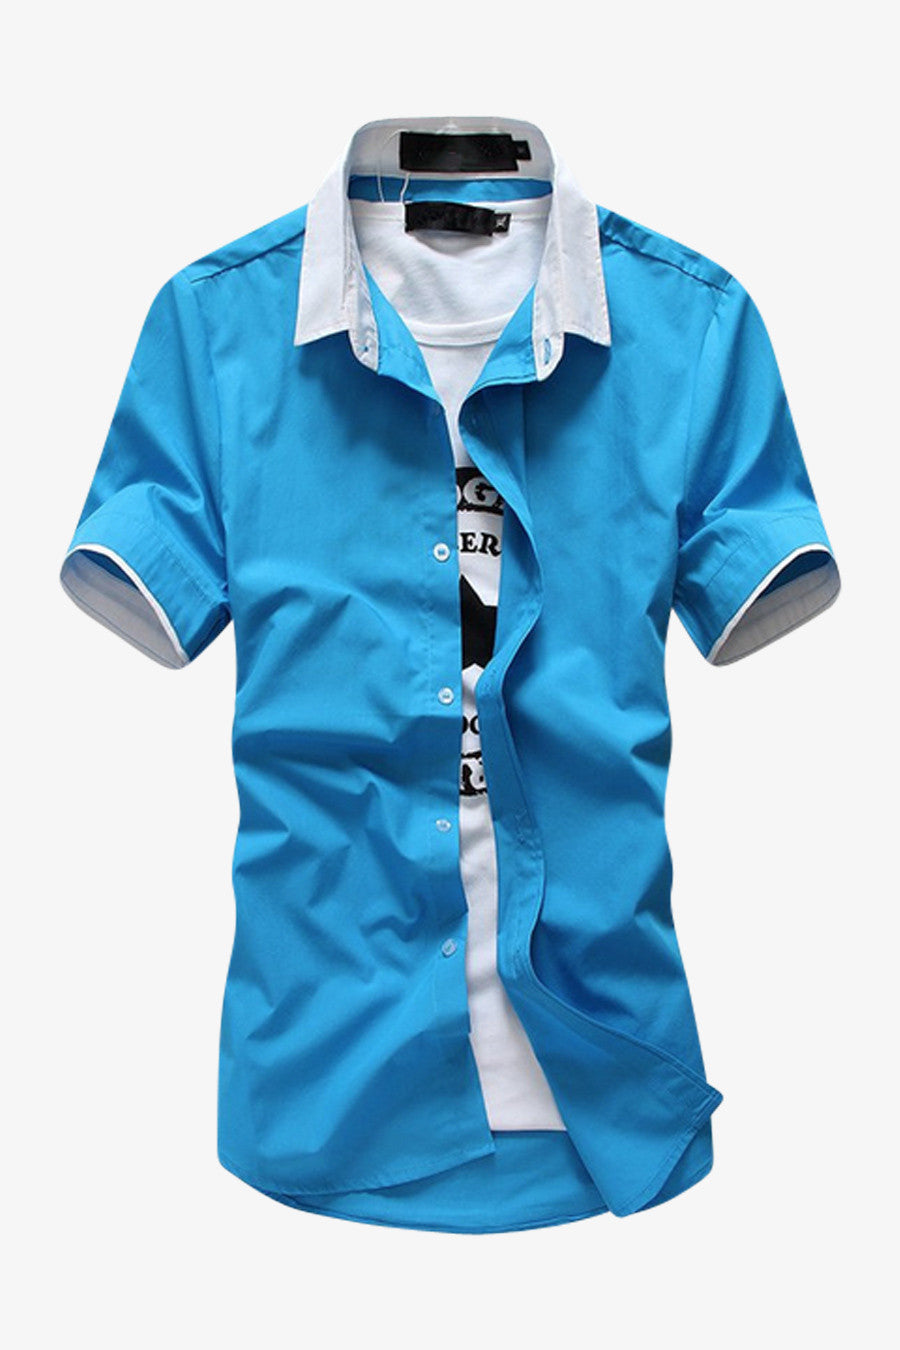 Blue Elegant Short-sleeved Shirt